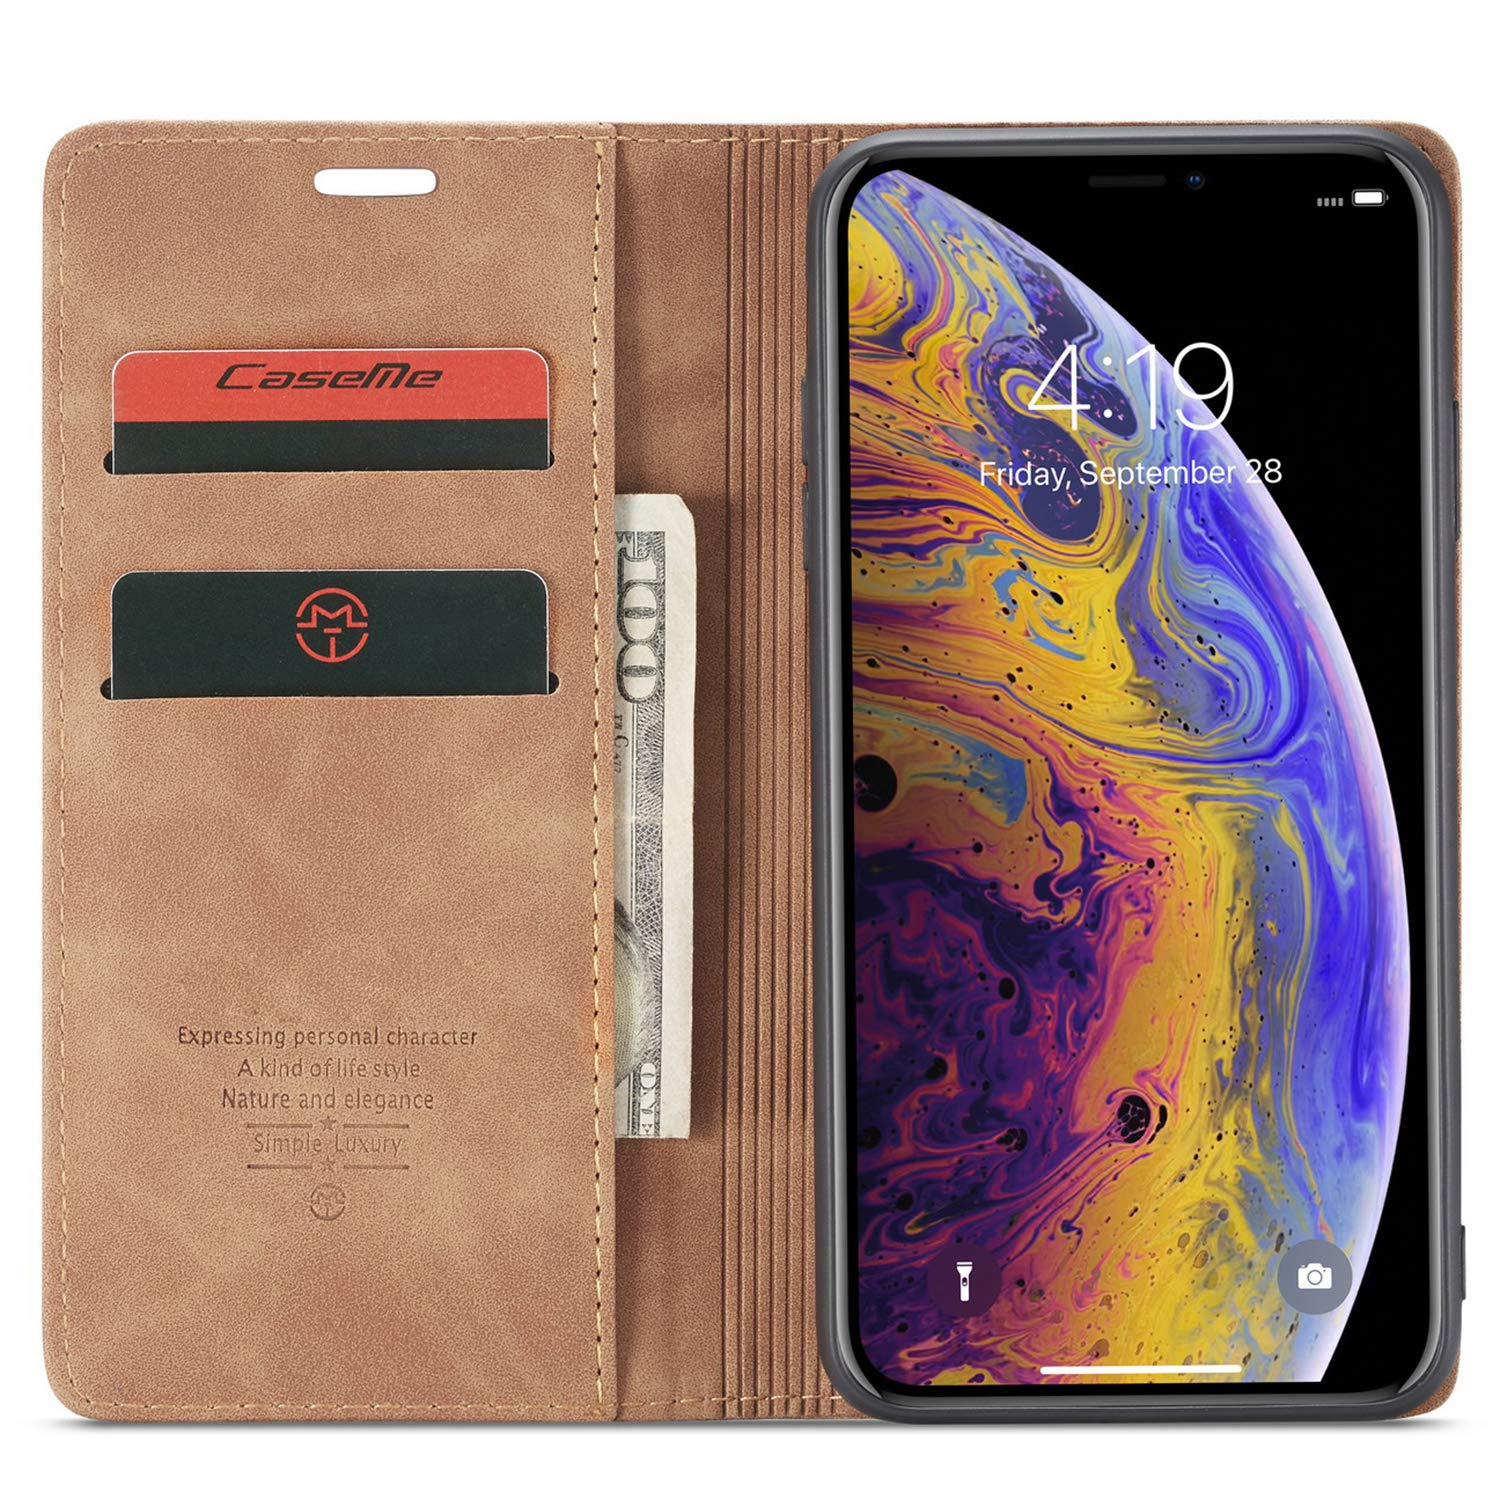 Iphone 7/8/7Plus/8Plus Wallet Case with Card Holder, Kickstand Magnet Flip Cover